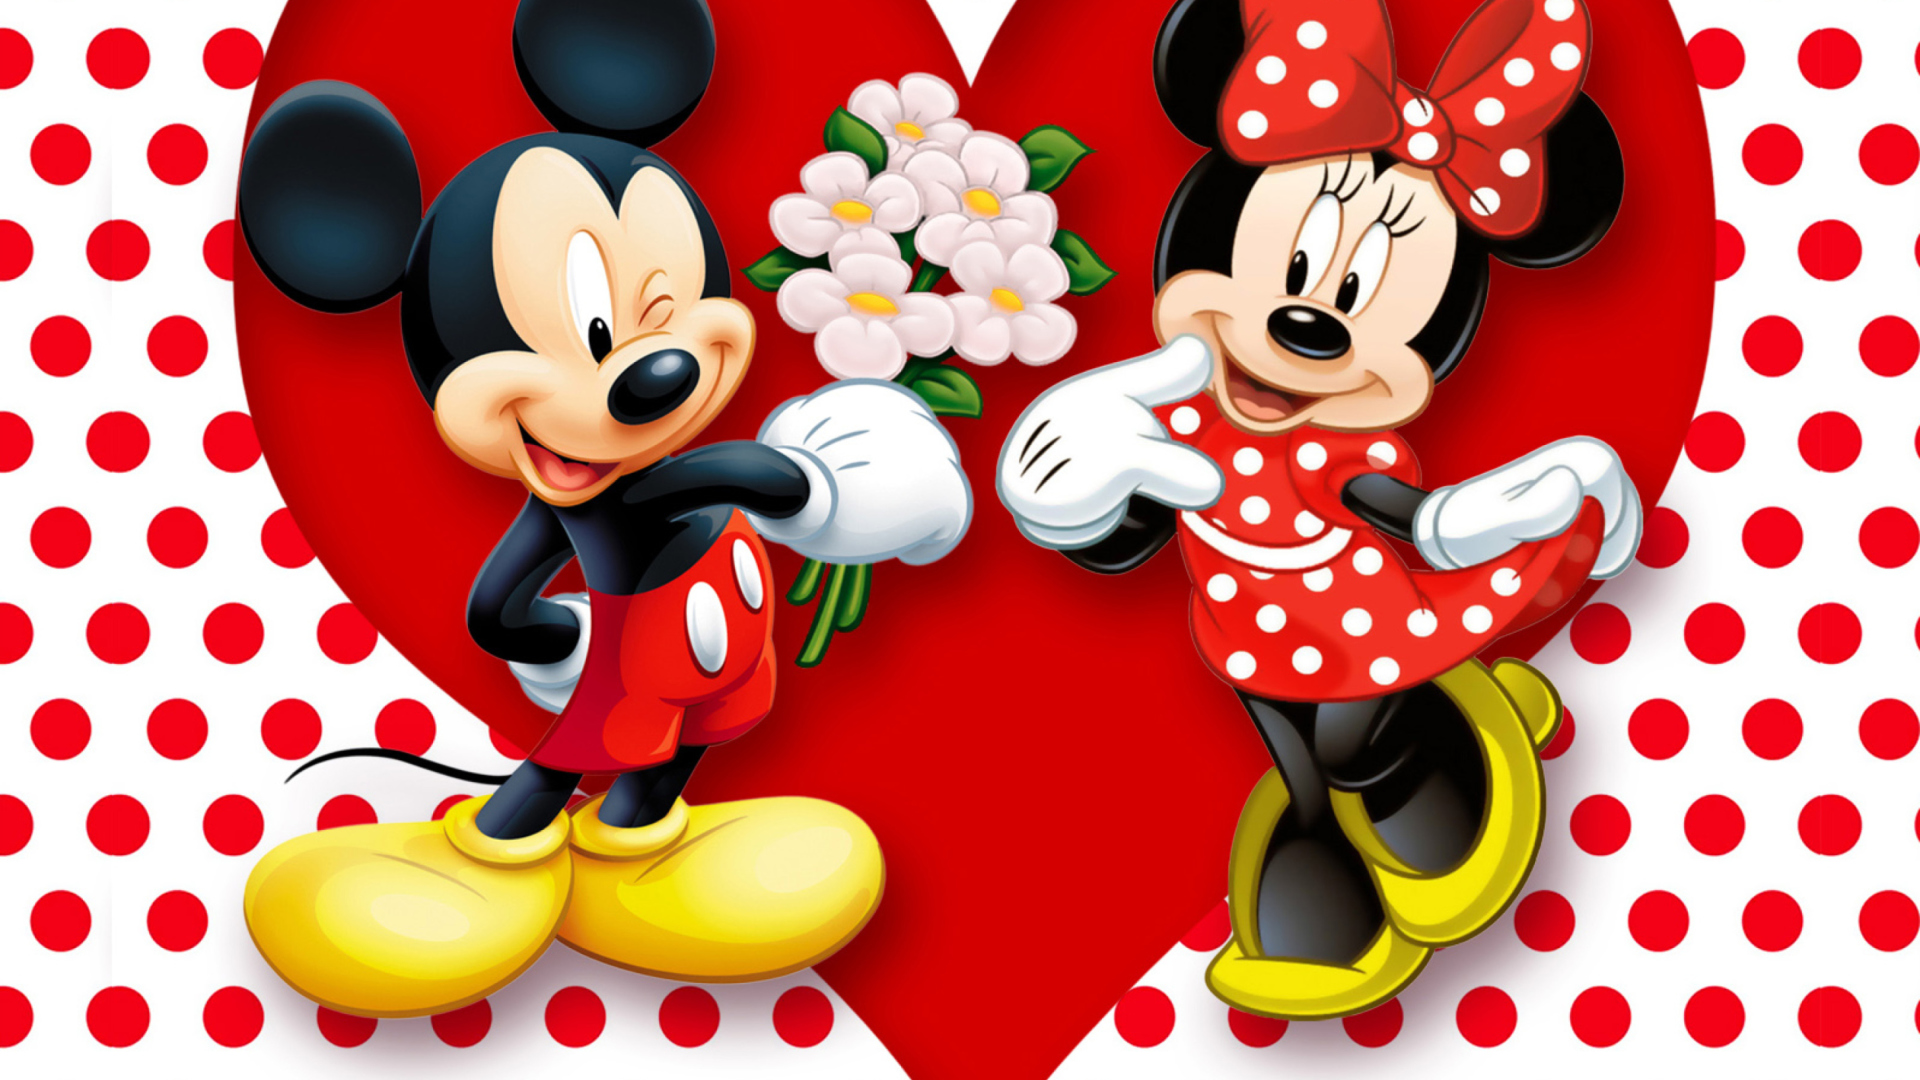 Minnie Mouse Wallpapers HD | PixelsTalk Net